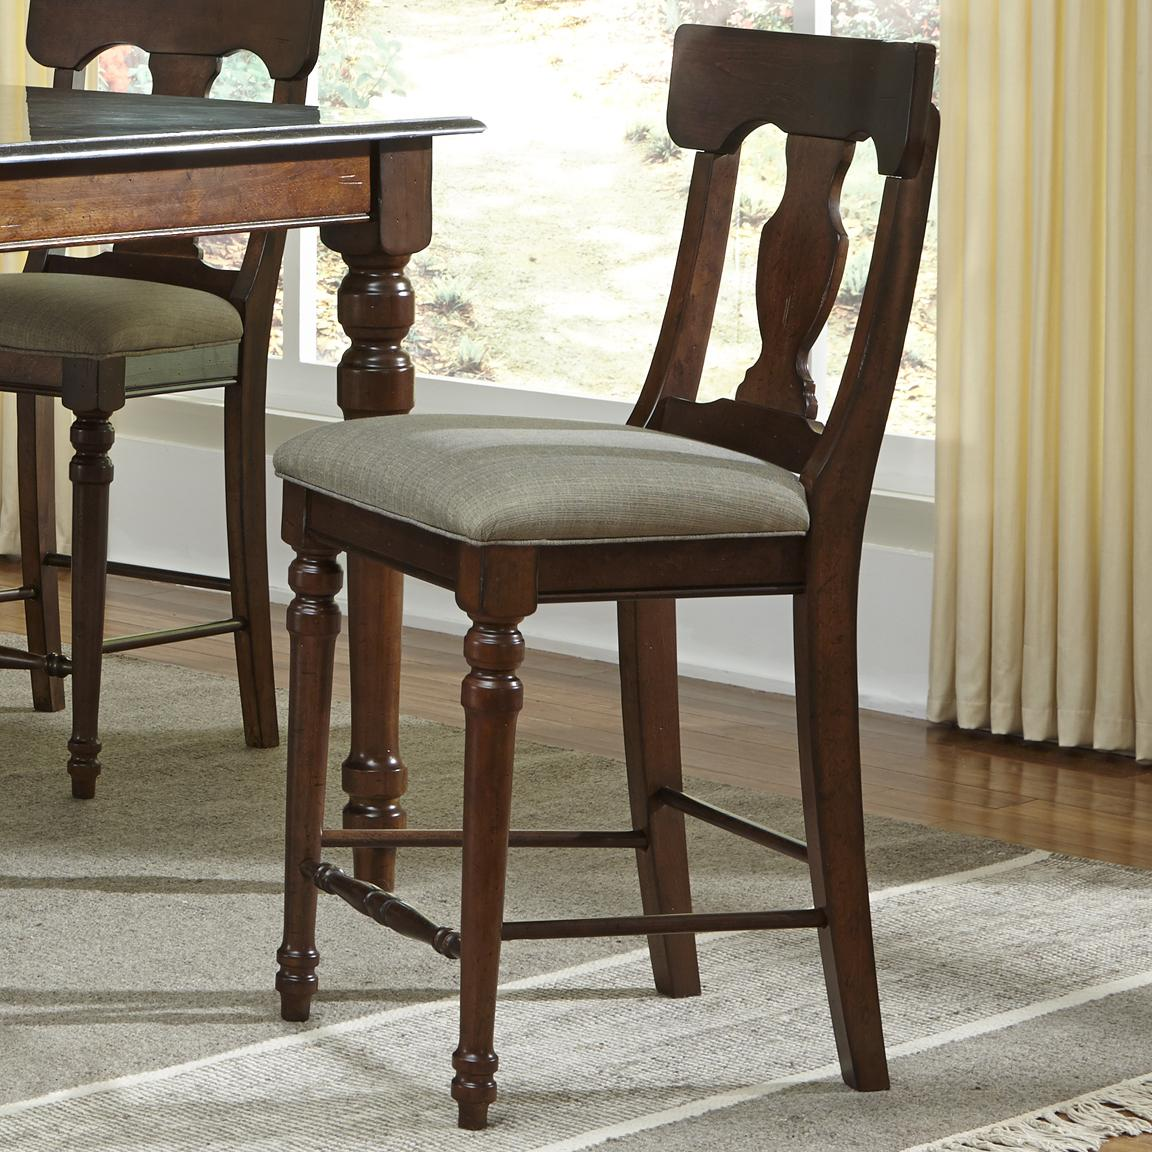 AAmerica Andover Park T-Back Stool - Item Number: ADV-AC-3-57-K